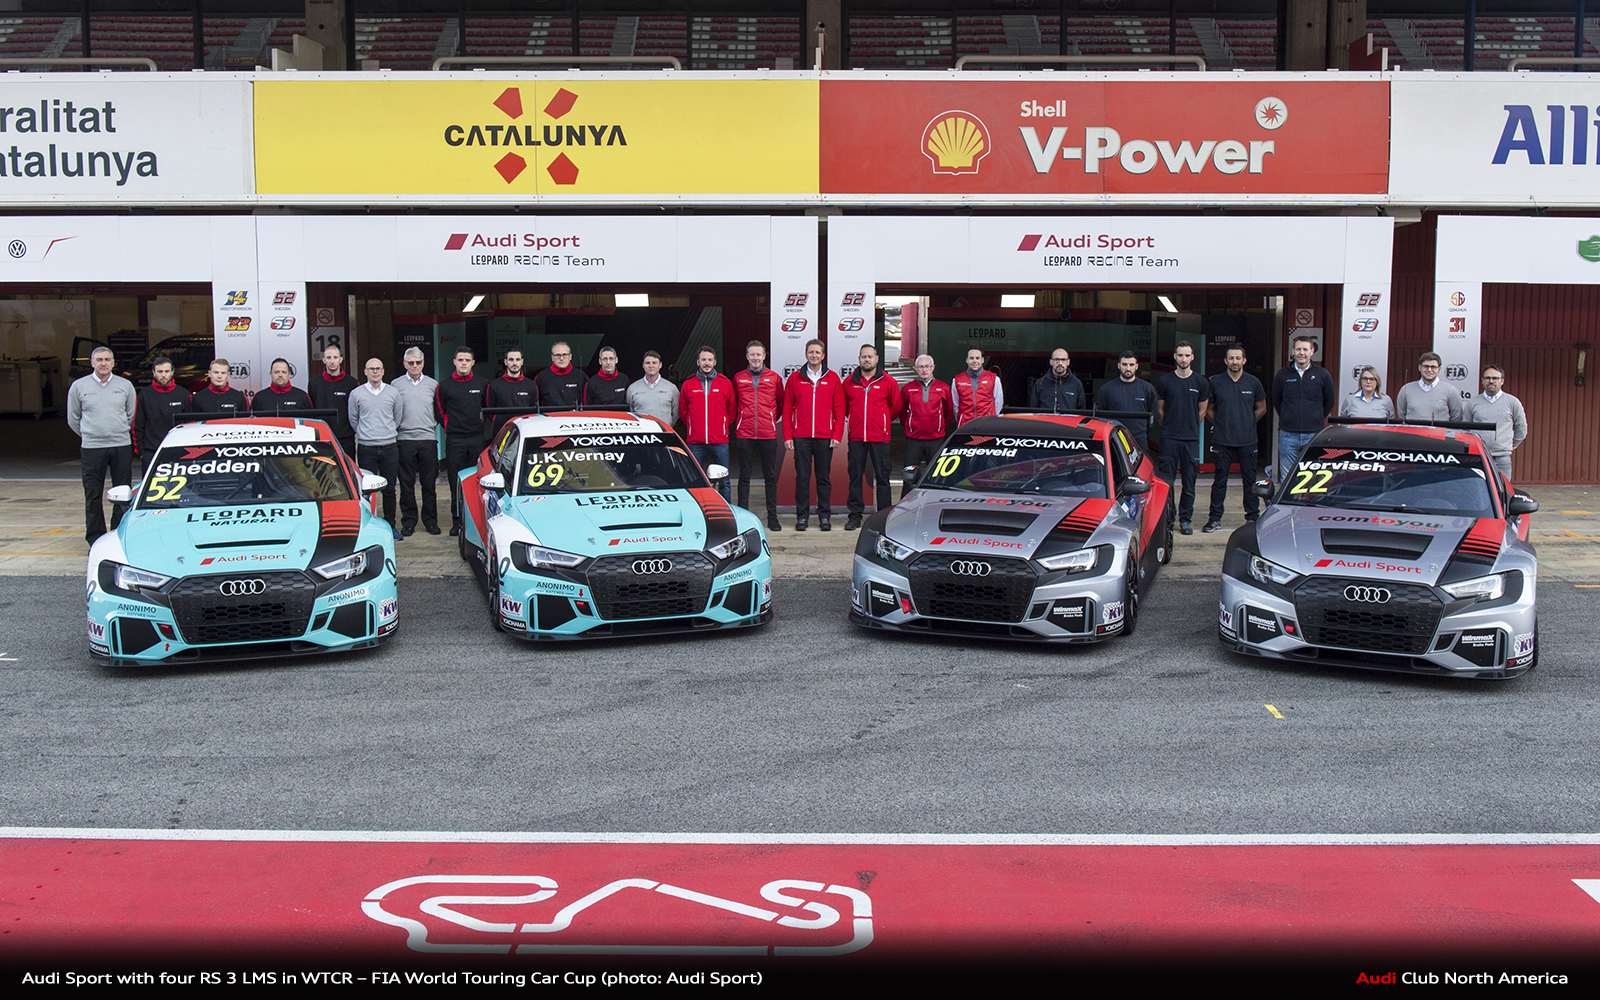 Audi Sport With Four RS 3 LMS in WTCR – FIA World Touring Car Cup